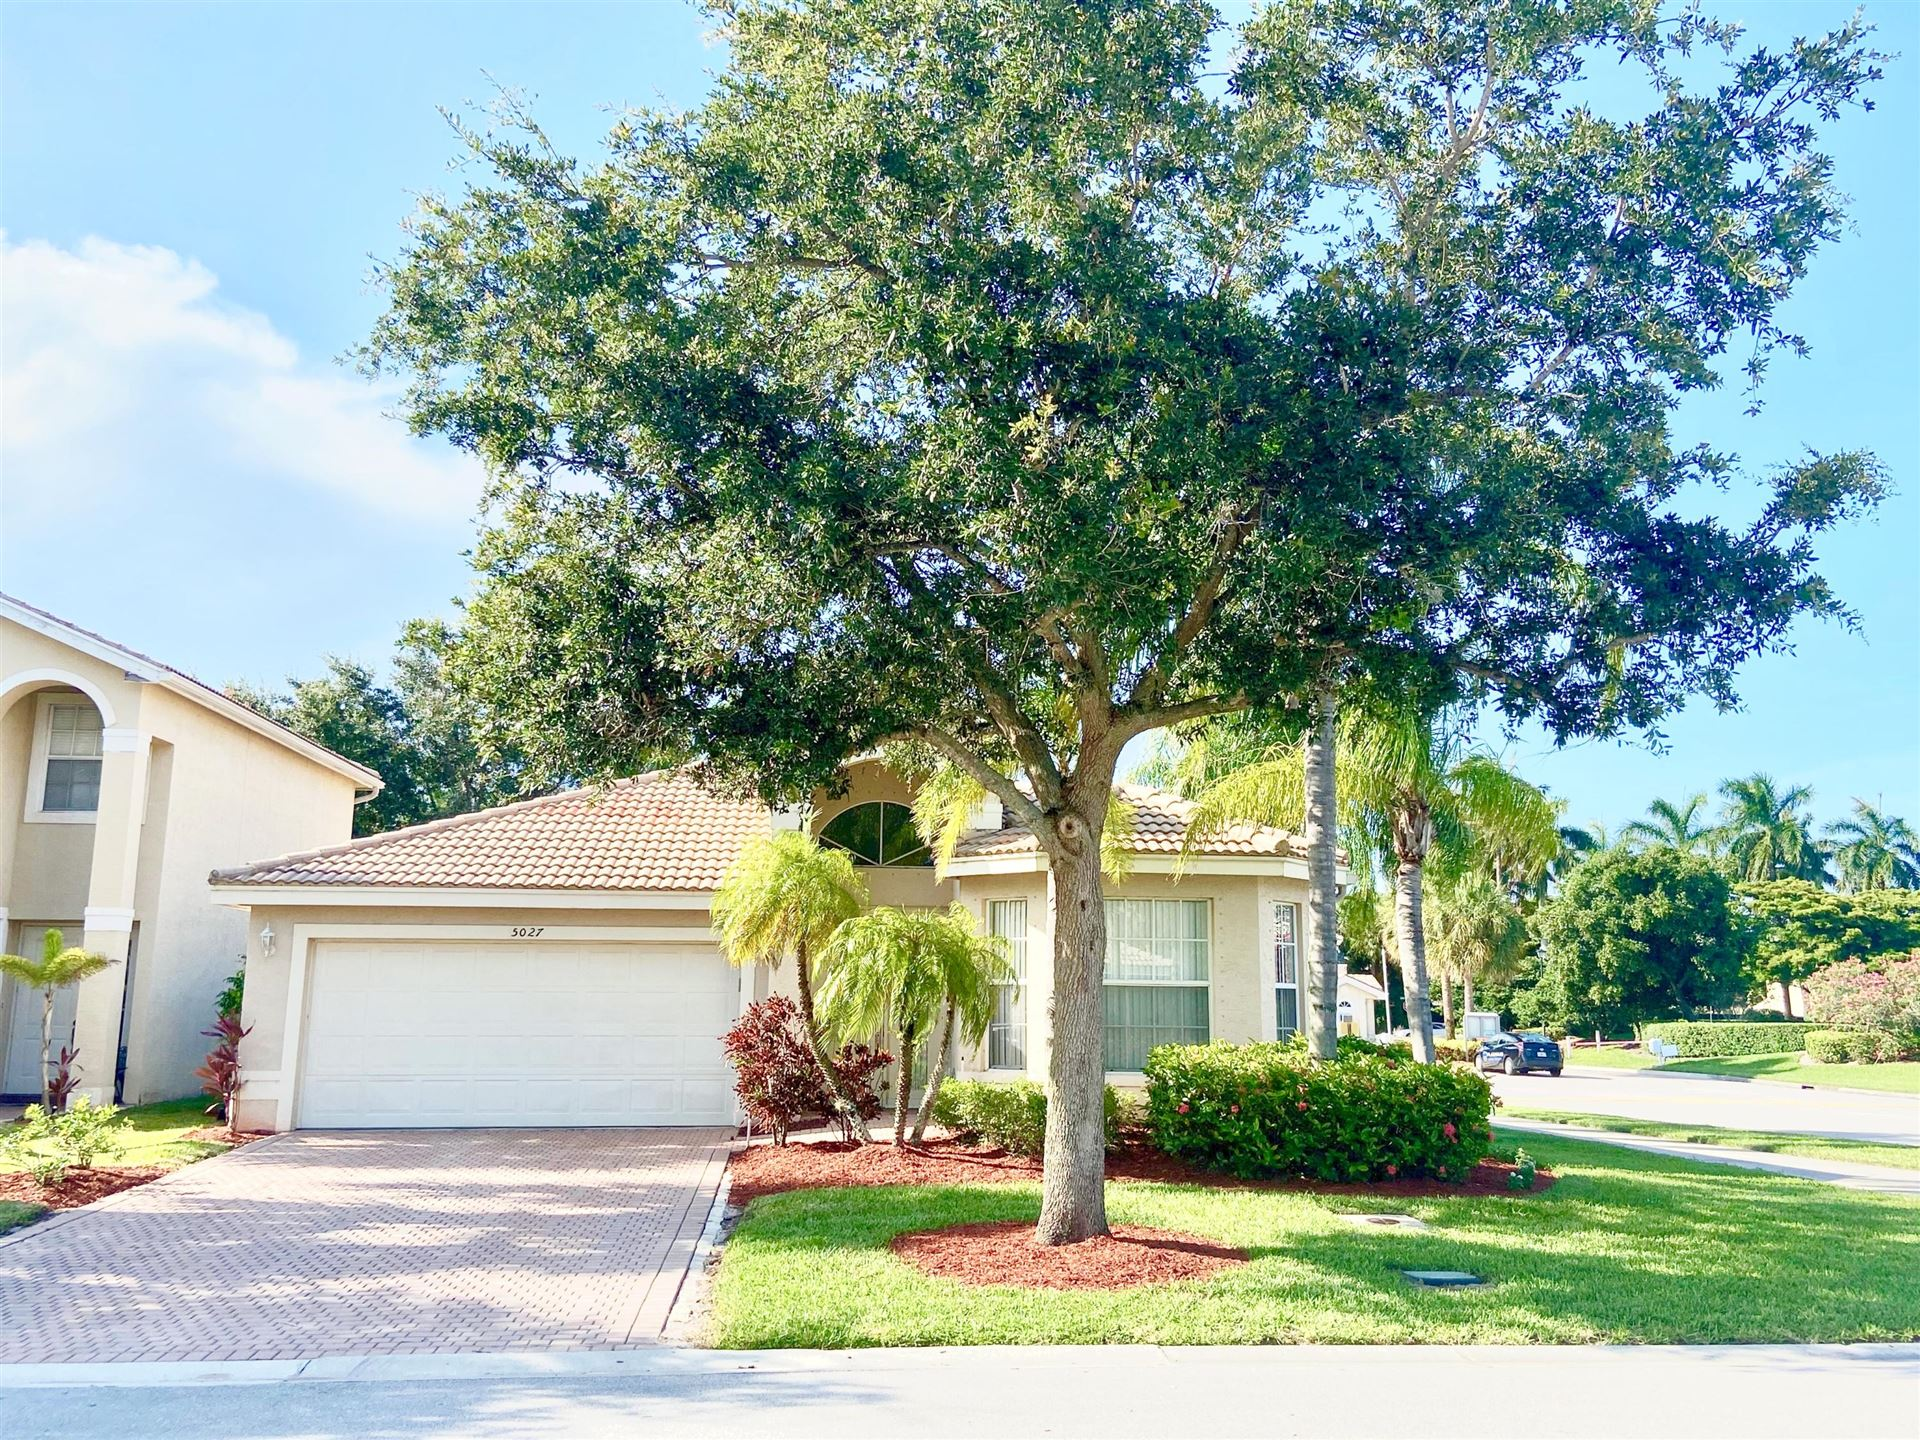 5027 Solar Point Drive, Greenacres, FL 33463 - #: RX-10636164